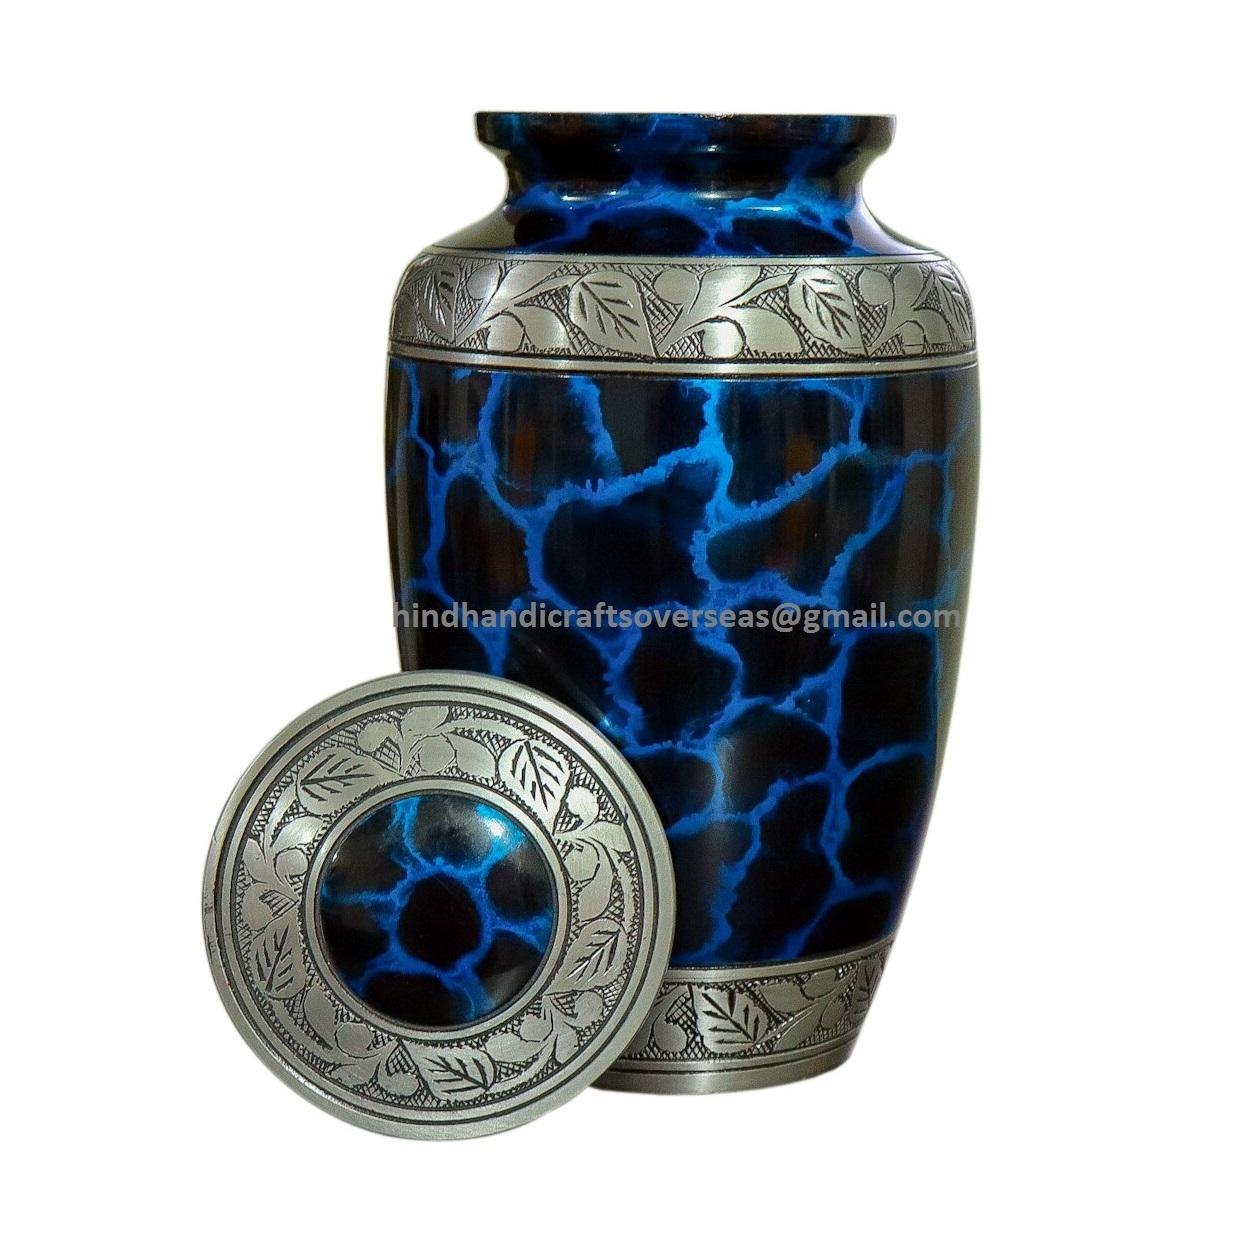 Blue cloud Adult Aluminium Human Cremation urns Funeral urns for human ashes hing quality cheap metal cremation urns